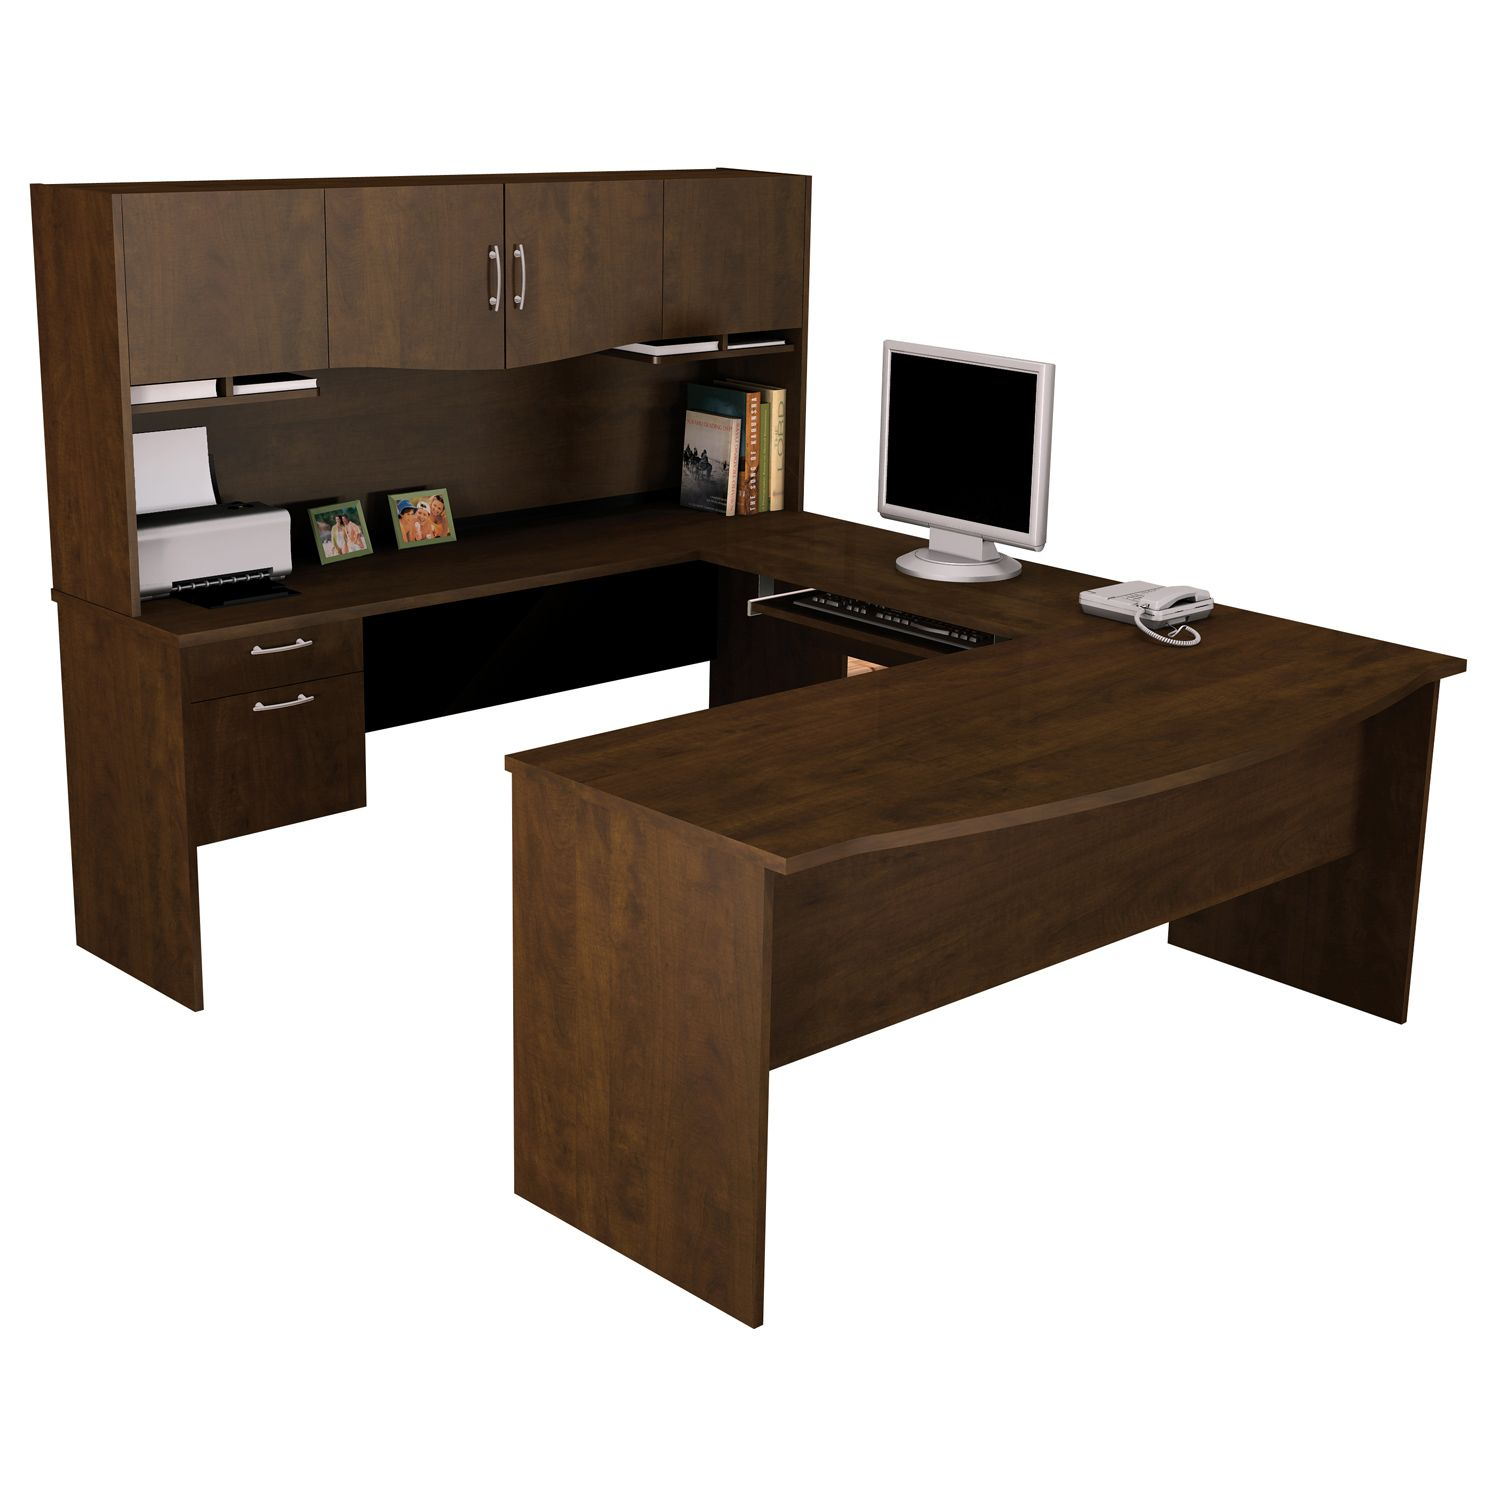 A Sturdy U Shaped Workstation Will Provide You With Plenty Of Space To  Study Or. Computer DesksOffice ...